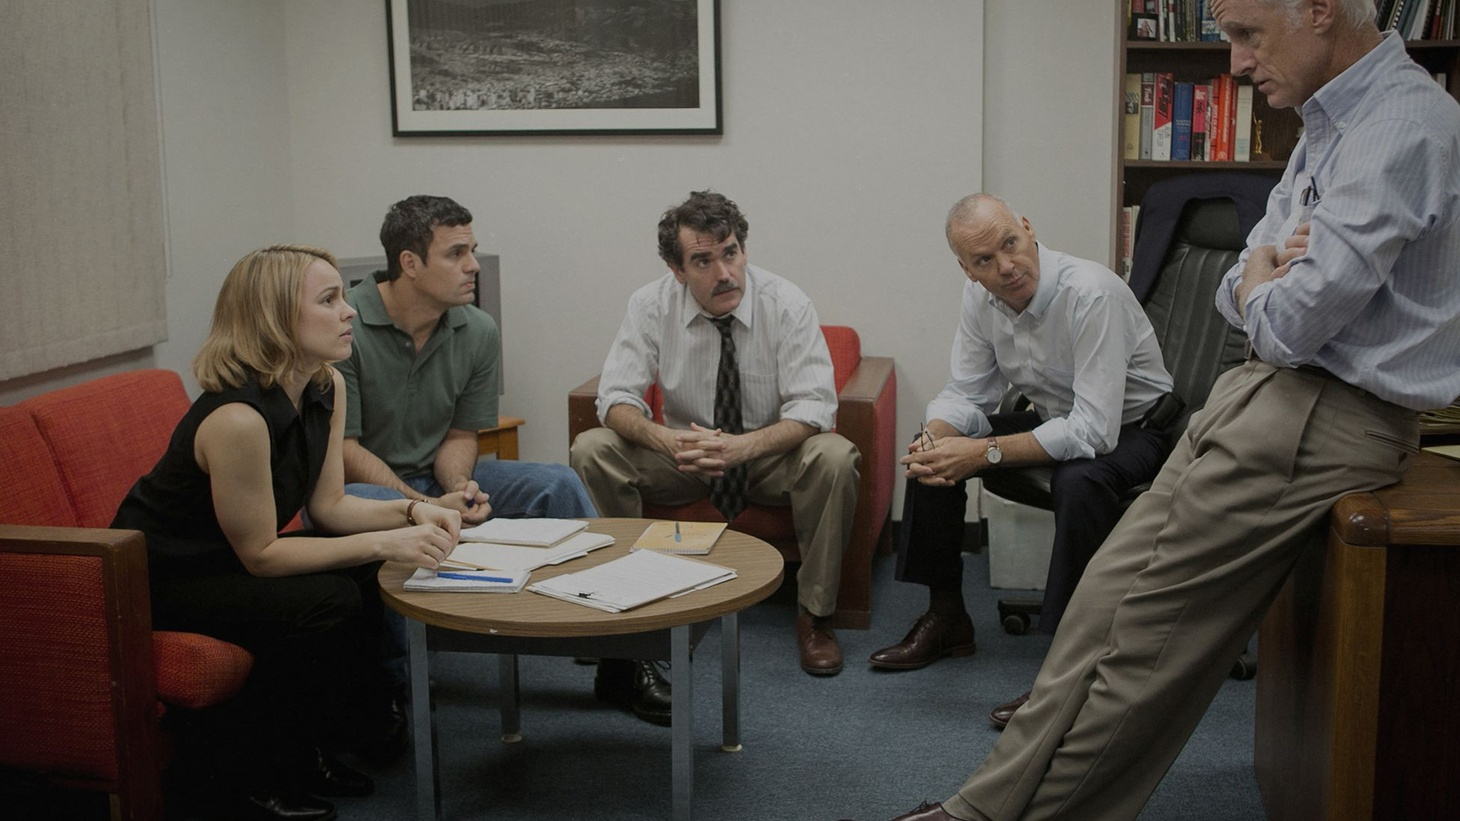 Spotlight is the year's best movie so far, and a rarity among all those dramatizations that claim to be based on actual events. Remarkably, the movie and its flawless ensemble cast have captured their subject in all its richness and complexity.